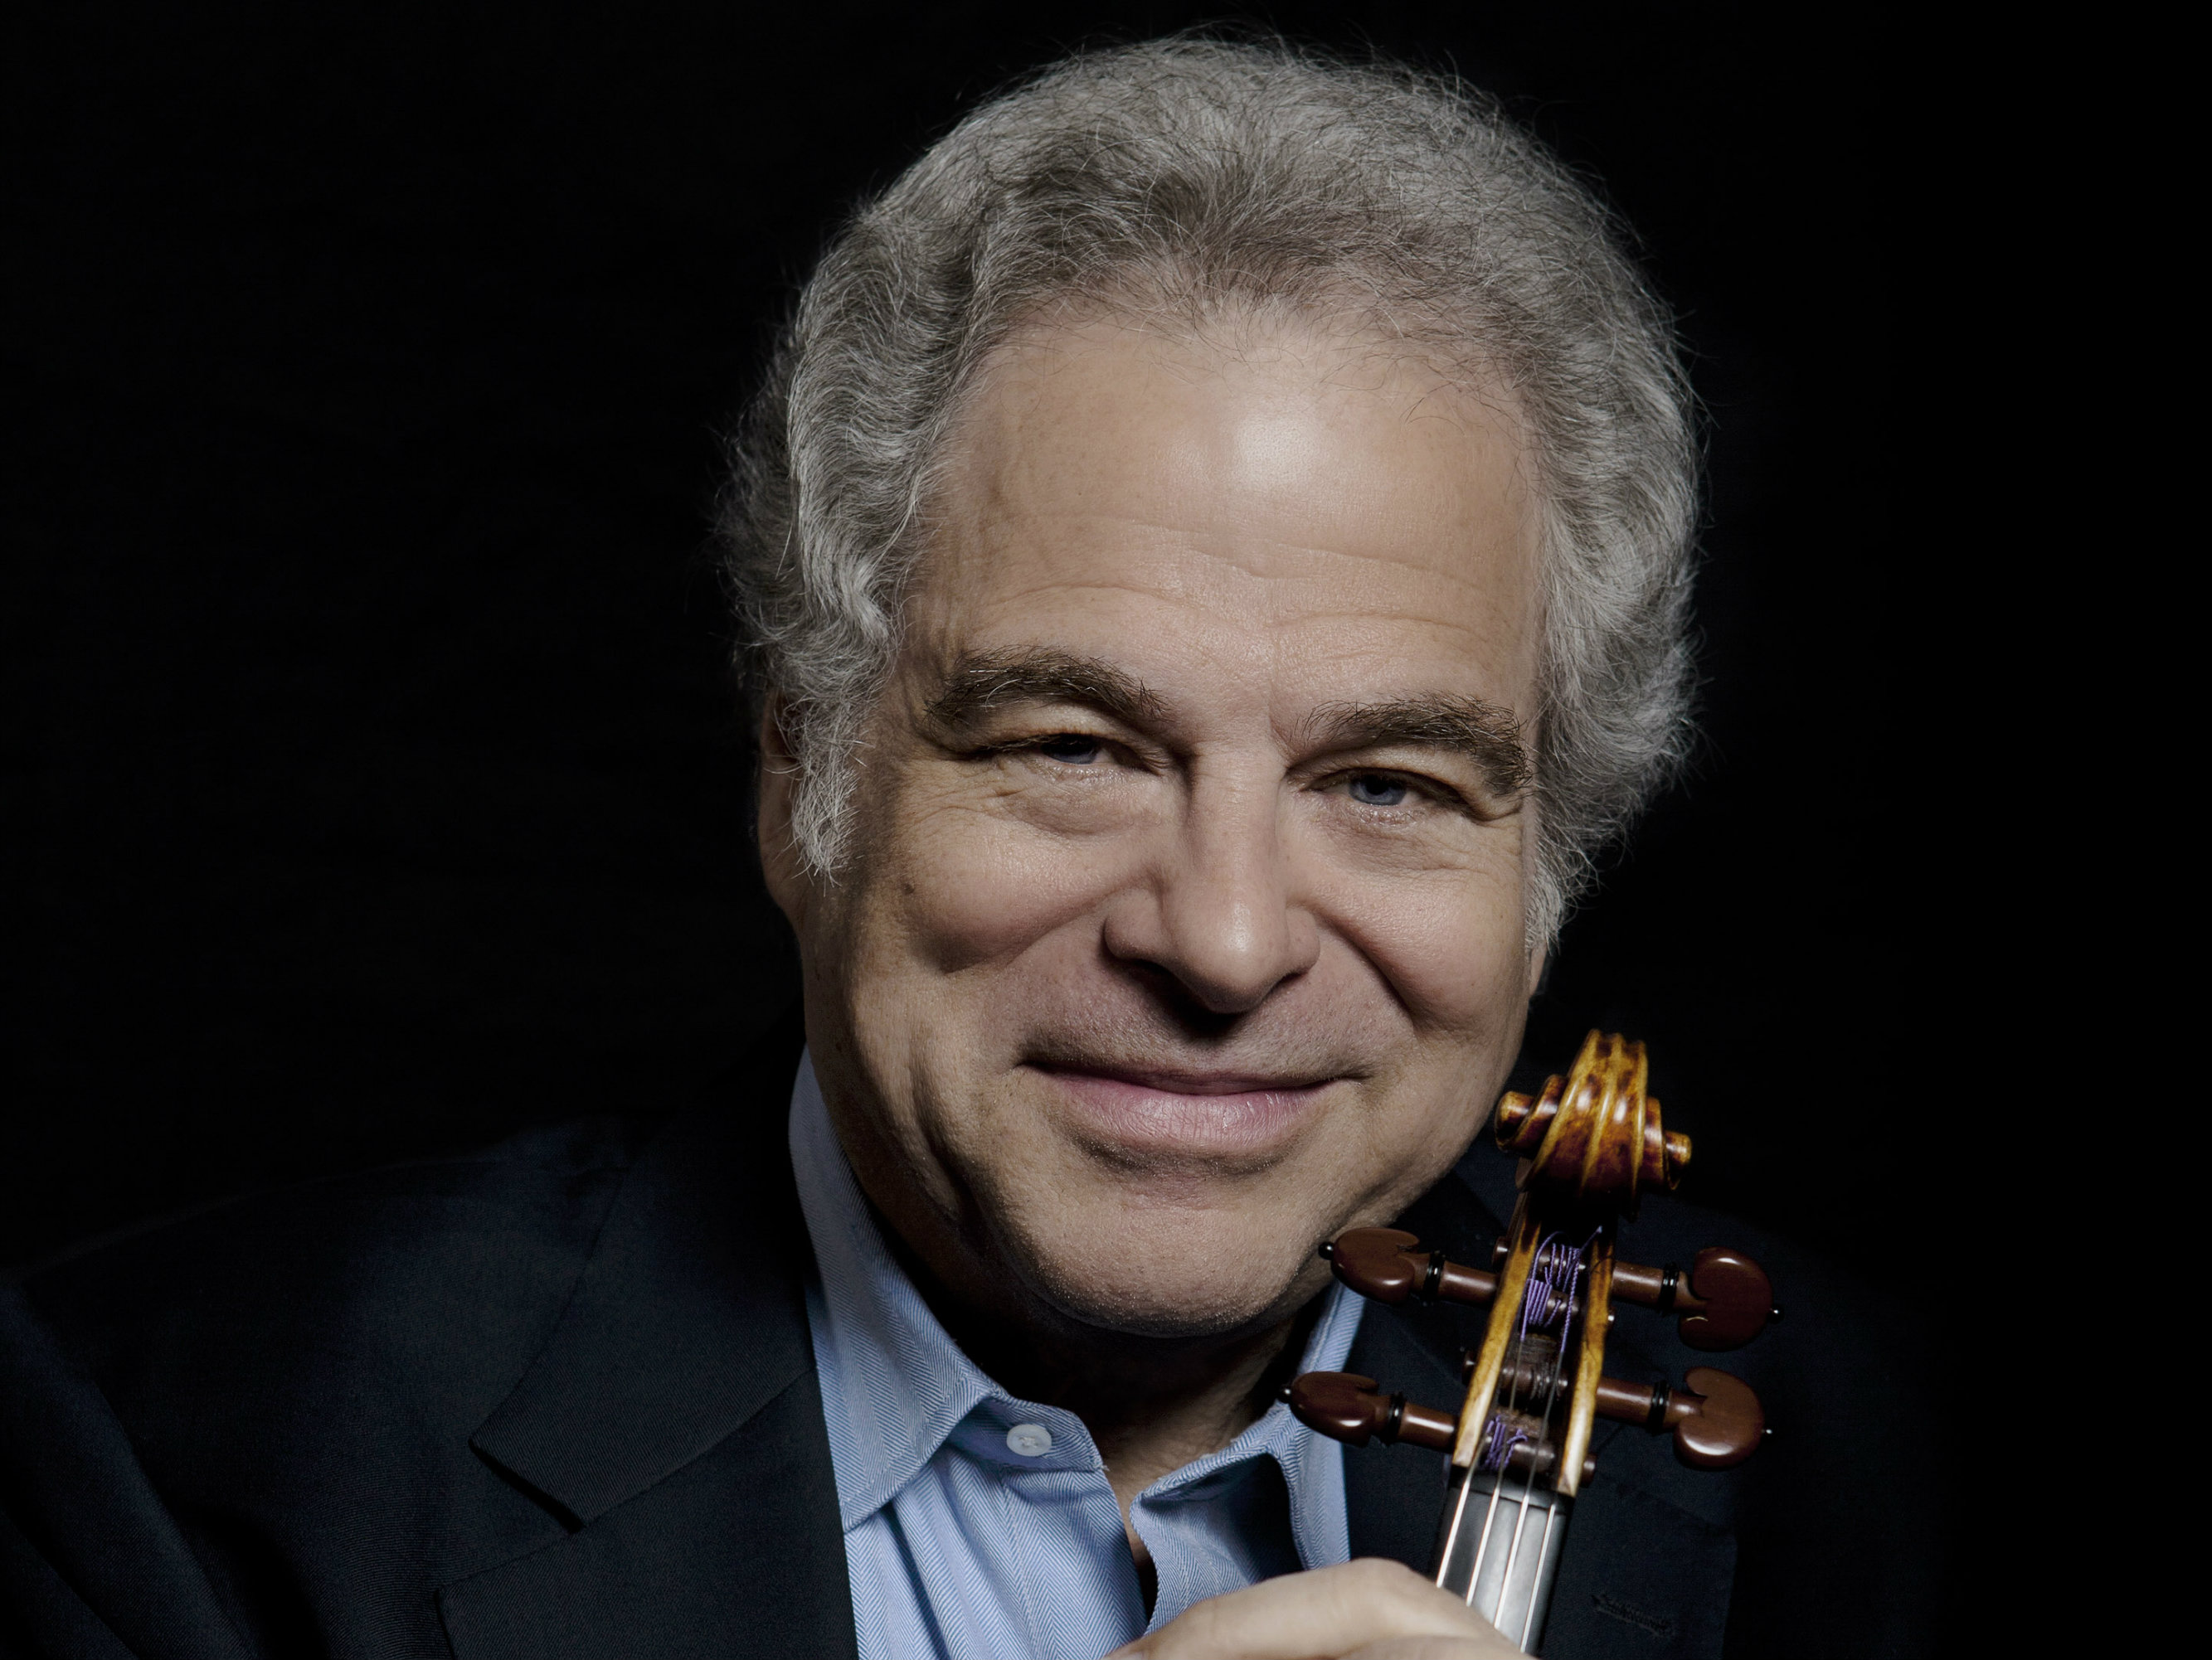 Photo: Itzhak Perlman press photo